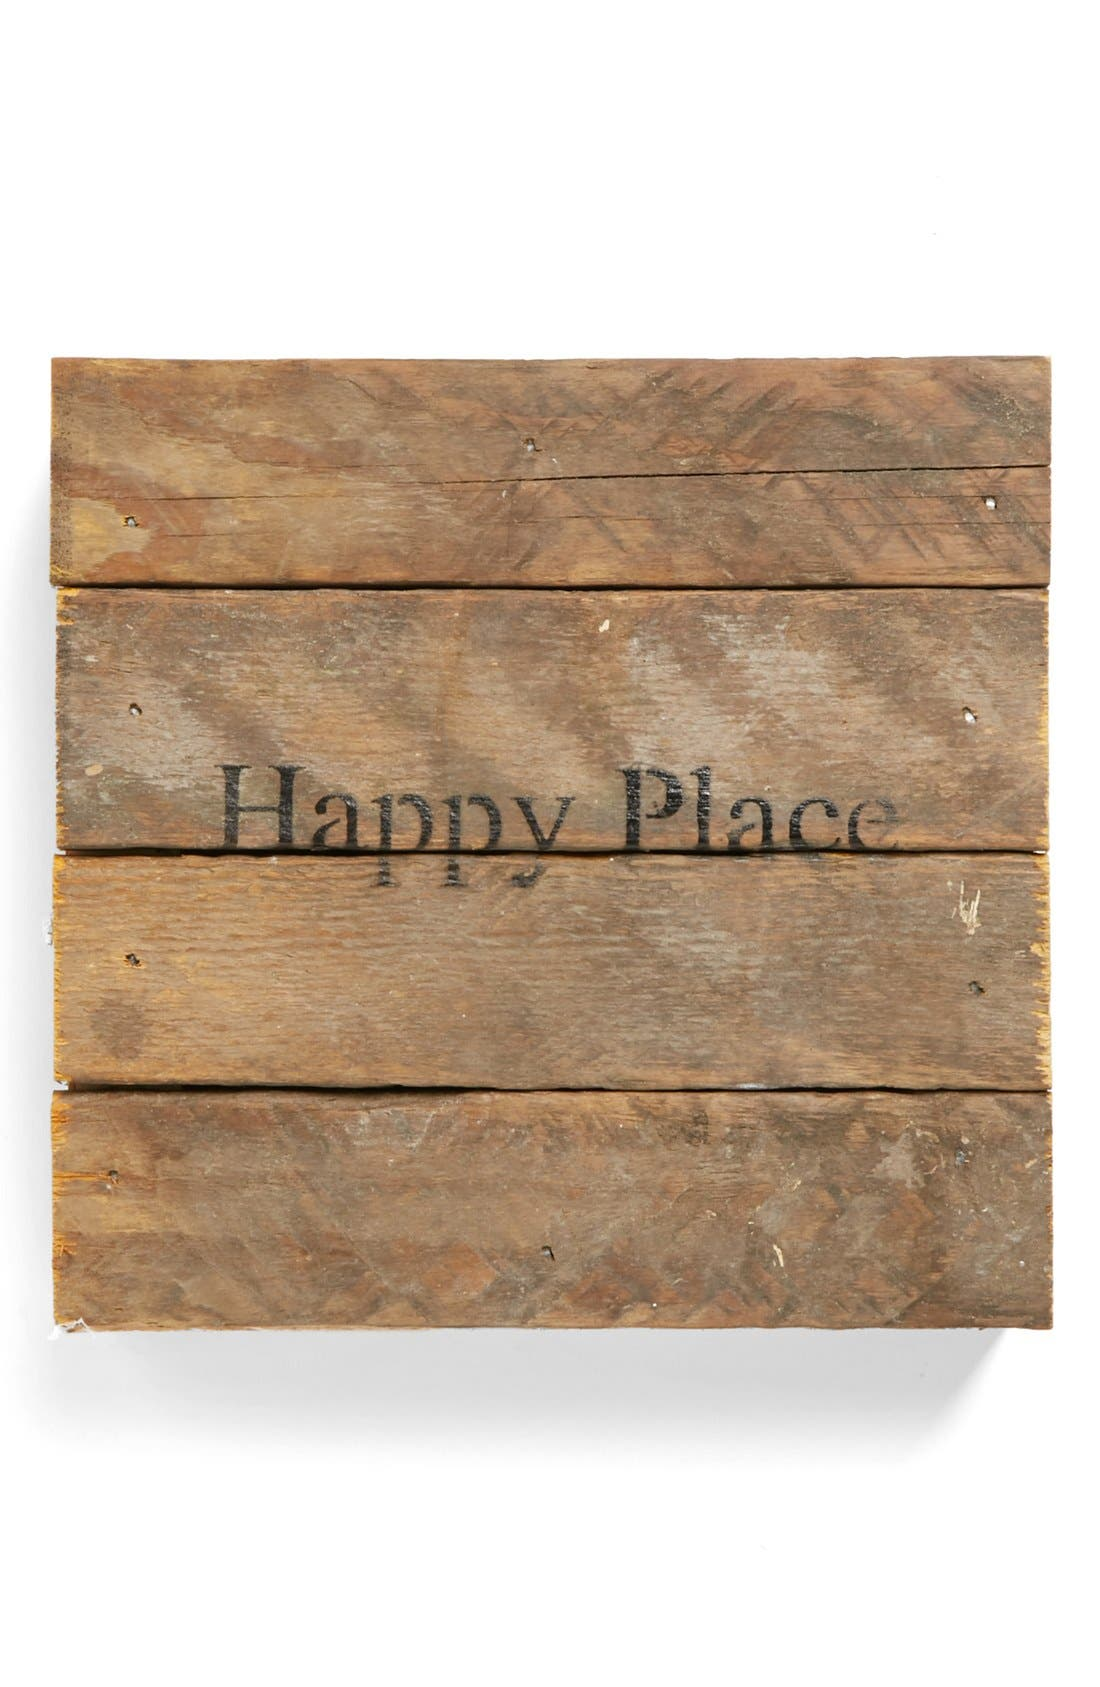 Alternate Image 1 Selected - Second Nature By Hand 'Happy Place' Repurposed Wood Wall Art